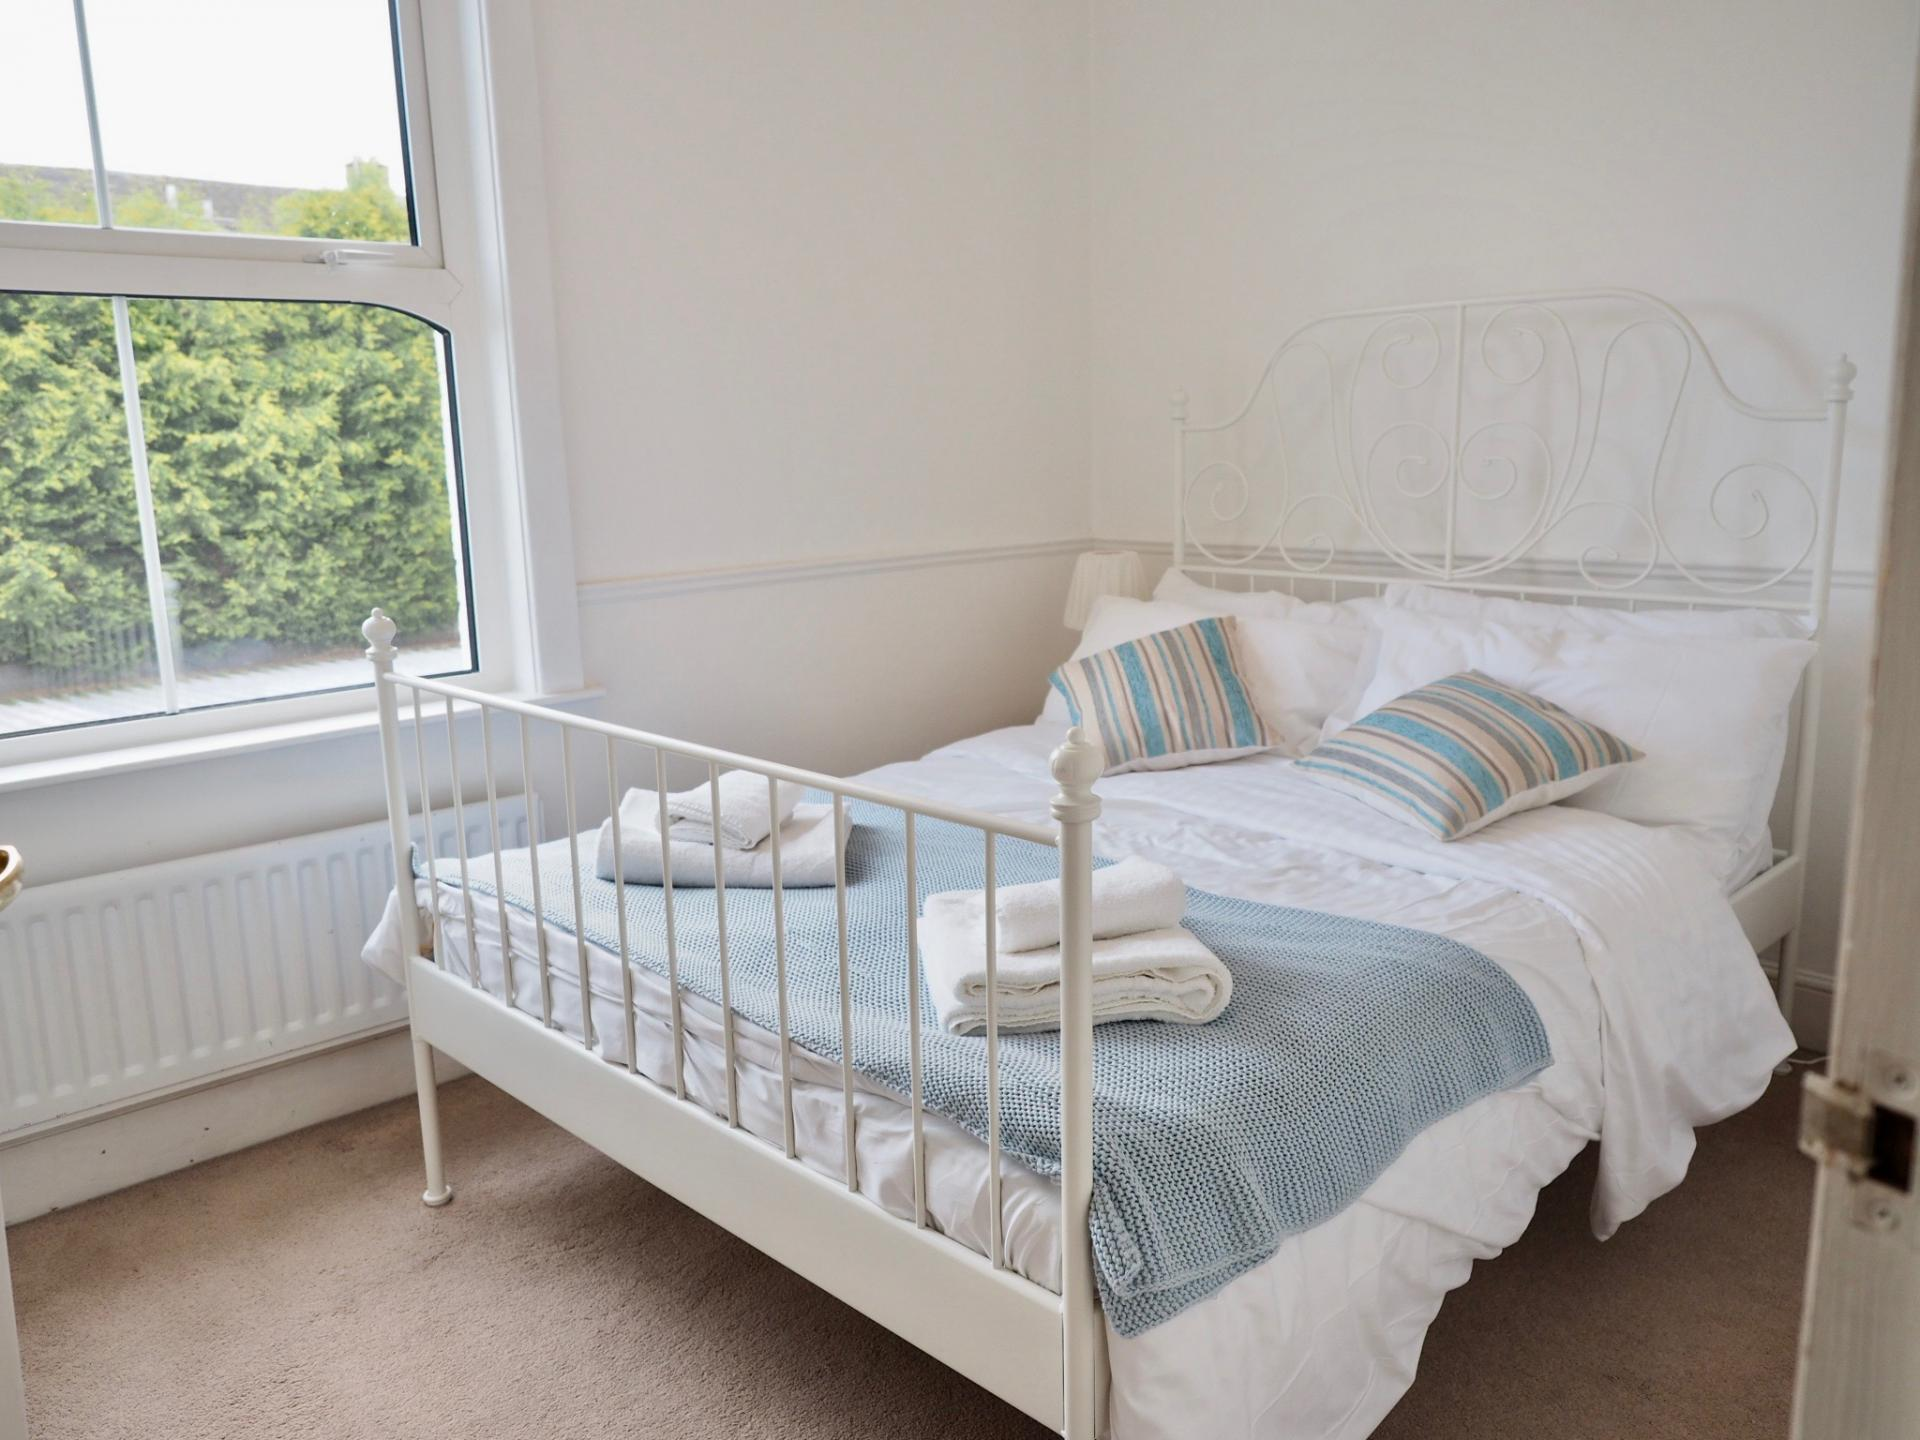 Bedroom at Gordon Street House, Centre, Leamington Spa